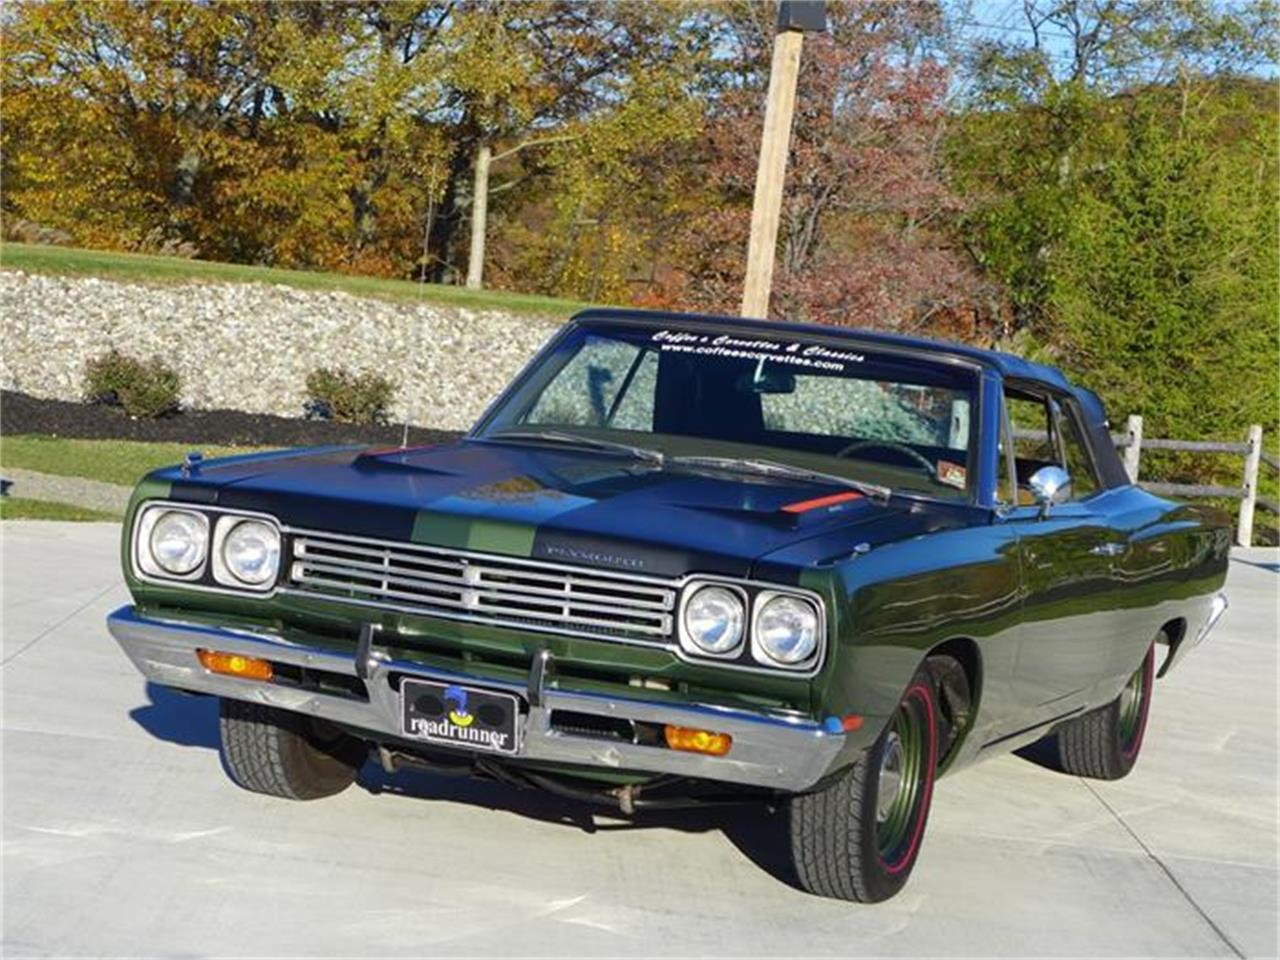 Large Picture of '69 Plymouth Road Runner located in Old Forge Pennsylvania Auction Vehicle Offered by Coffee's Sports and Classics - FT12